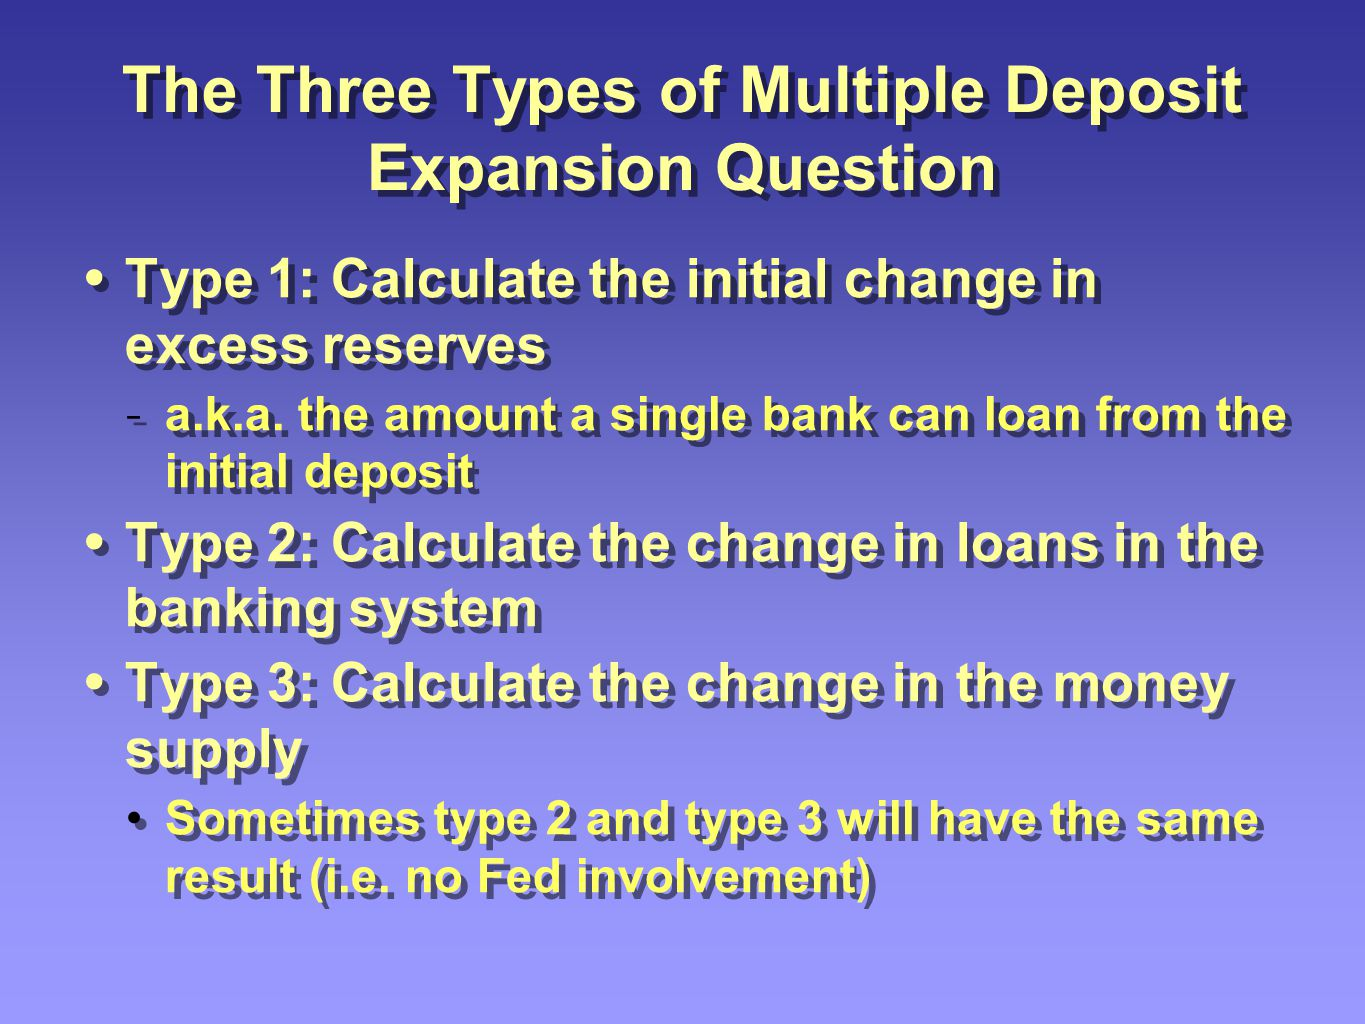 The Three Types of Multiple Deposit Expansion Question